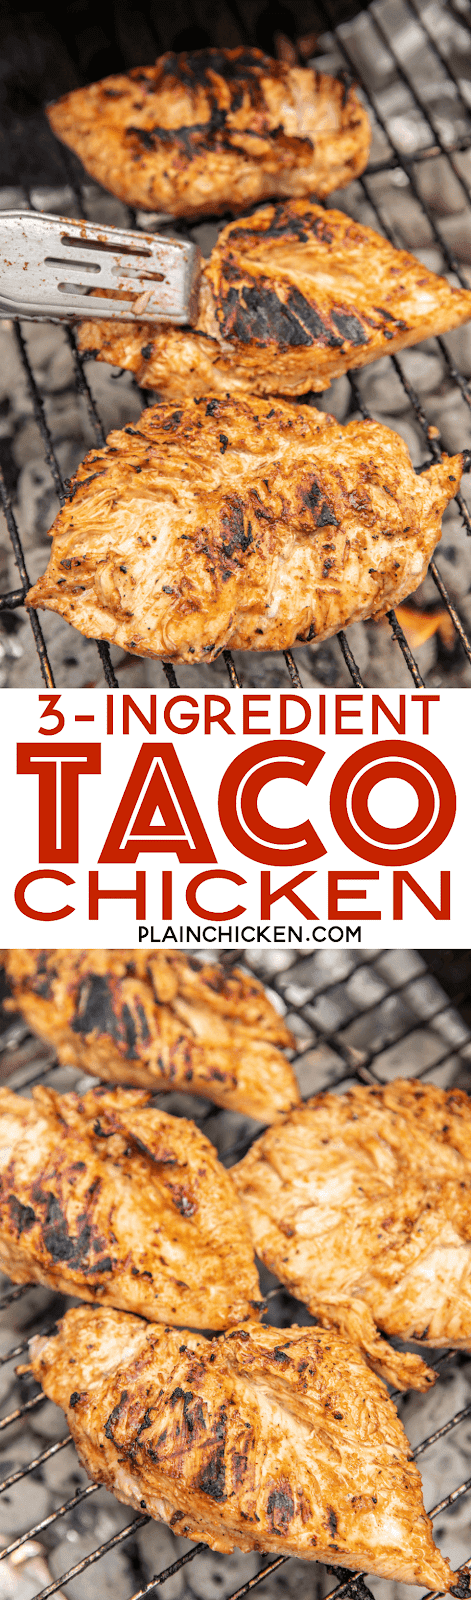 3-Ingredient Taco Chicken - only 3 ingredients including the chicken!! SO easy! Chicken, taco seasoning and Italian dressing. Great as a main dish, chopped up in fajitas, tacos, wraps or on top of a salad. Such a versatile grilled chicken recipe!! Give this a try the next time you fire up the grill. You won't be disappointed! #grilling #grill #taco #chicken #chickenrecipe #grilledchicken